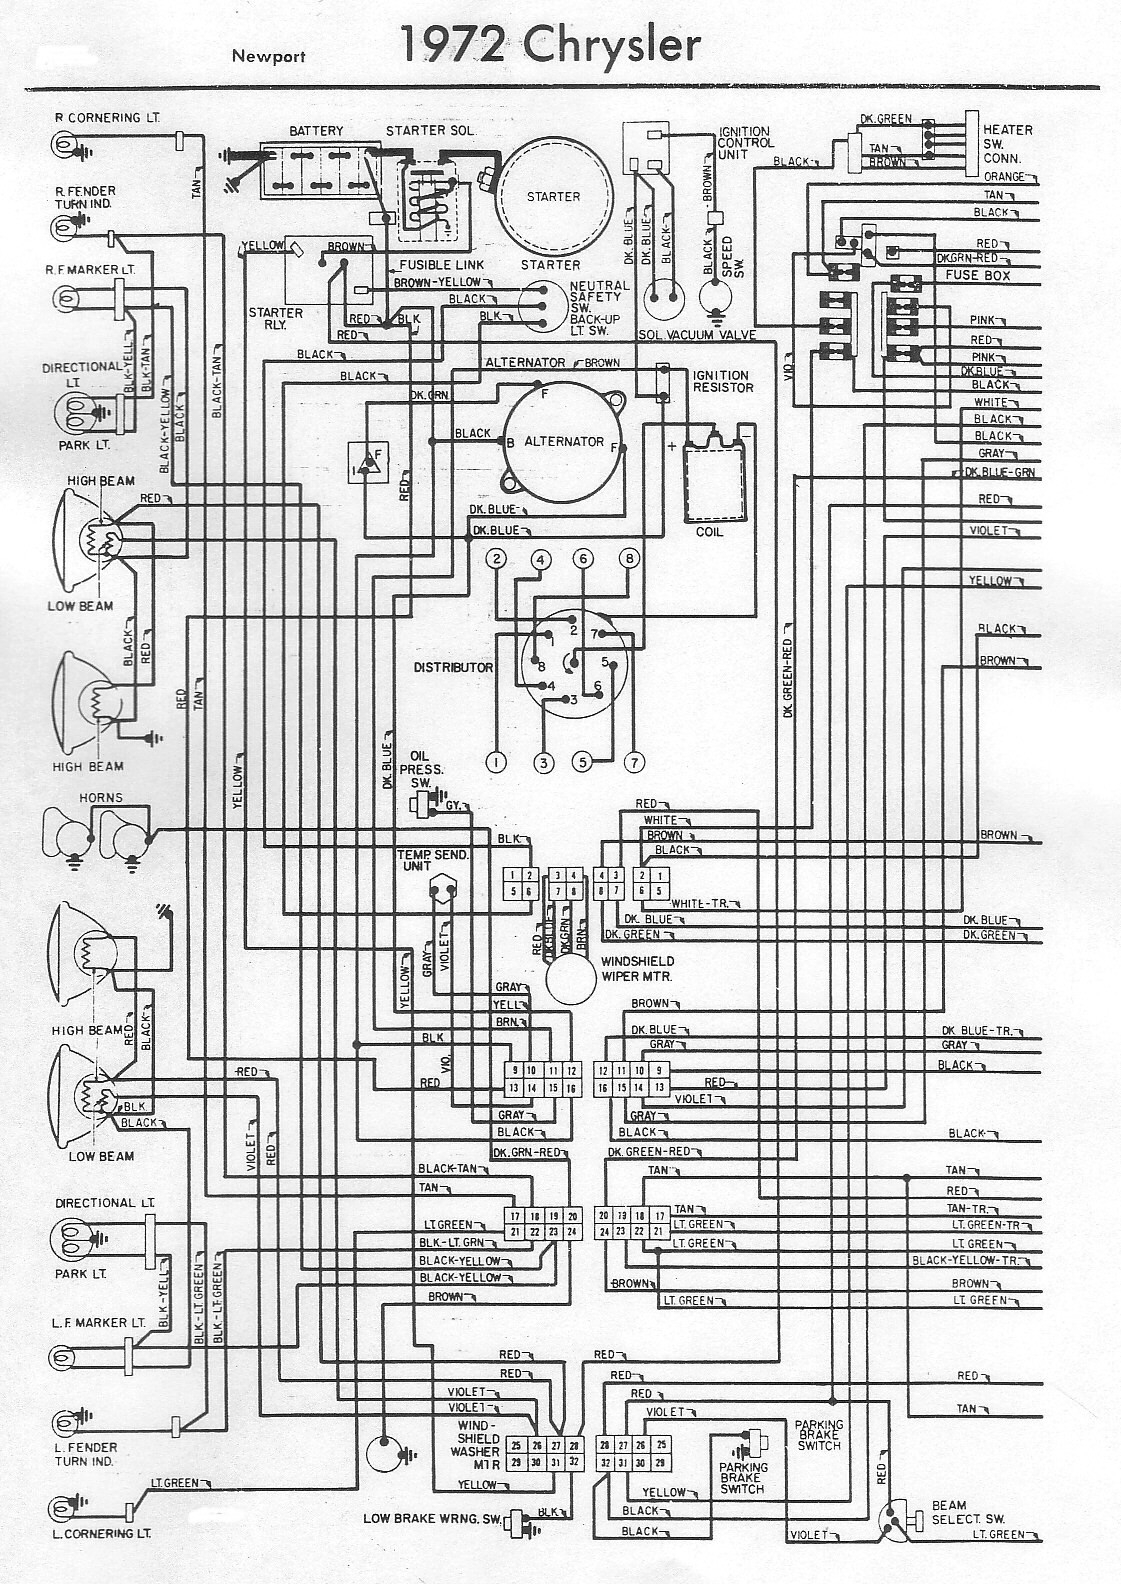 Electrical Wiring Diagram 1954 Dodge Chrysler 1970 Plymouth Charging System 1972 Chevrolet 1967